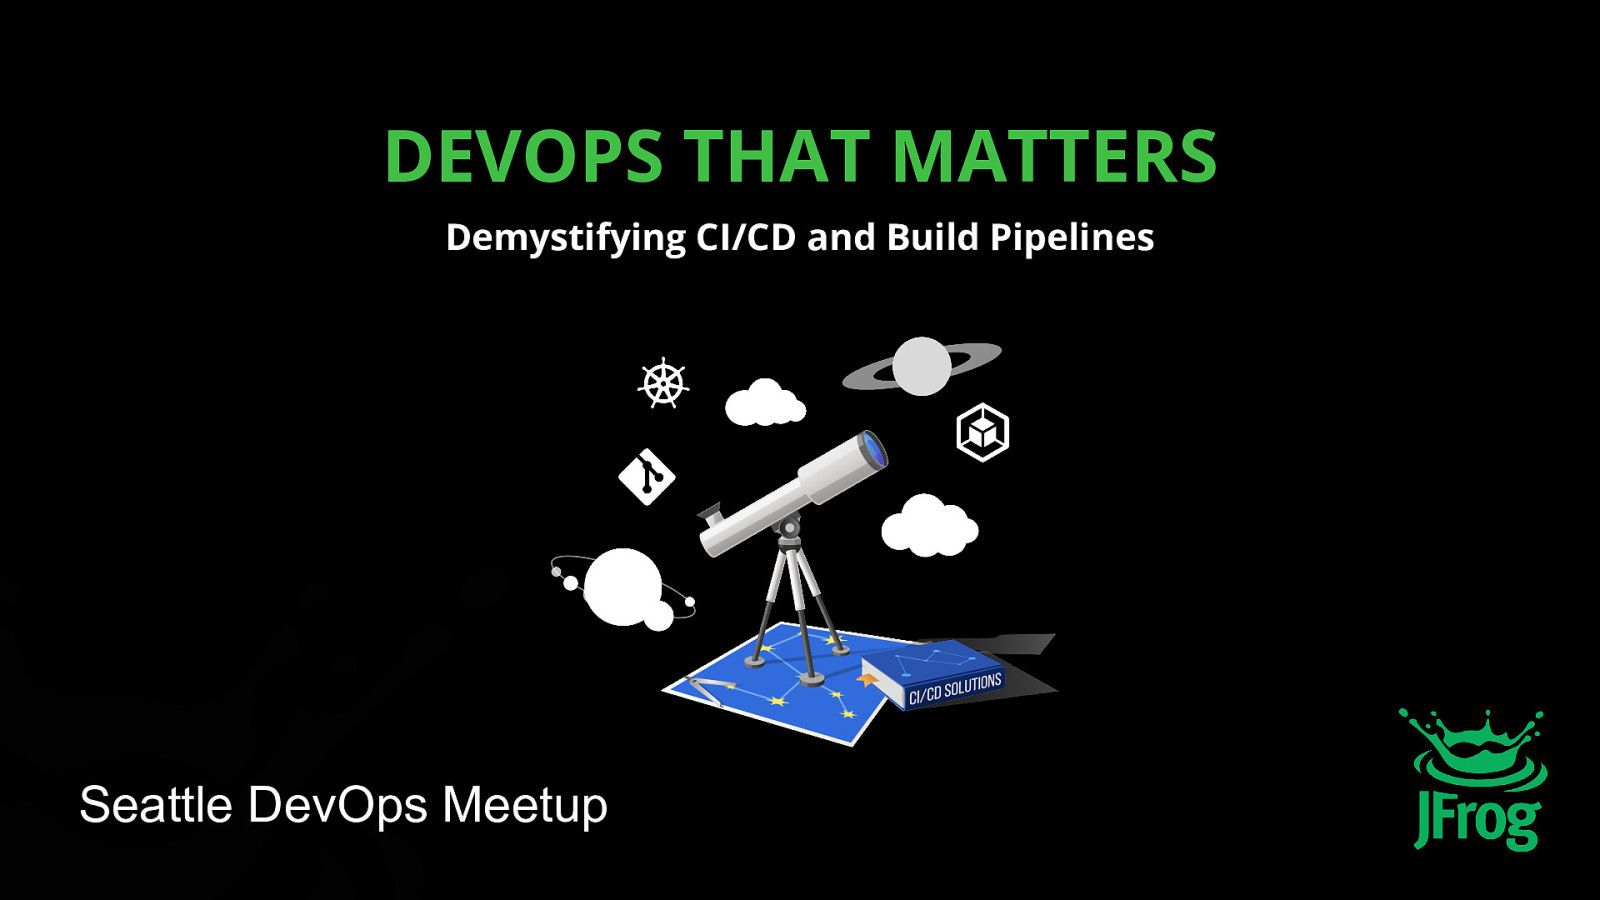 DevOps That Matters - Demystifying CI/CD and Build Pipelines by Melissa McKay